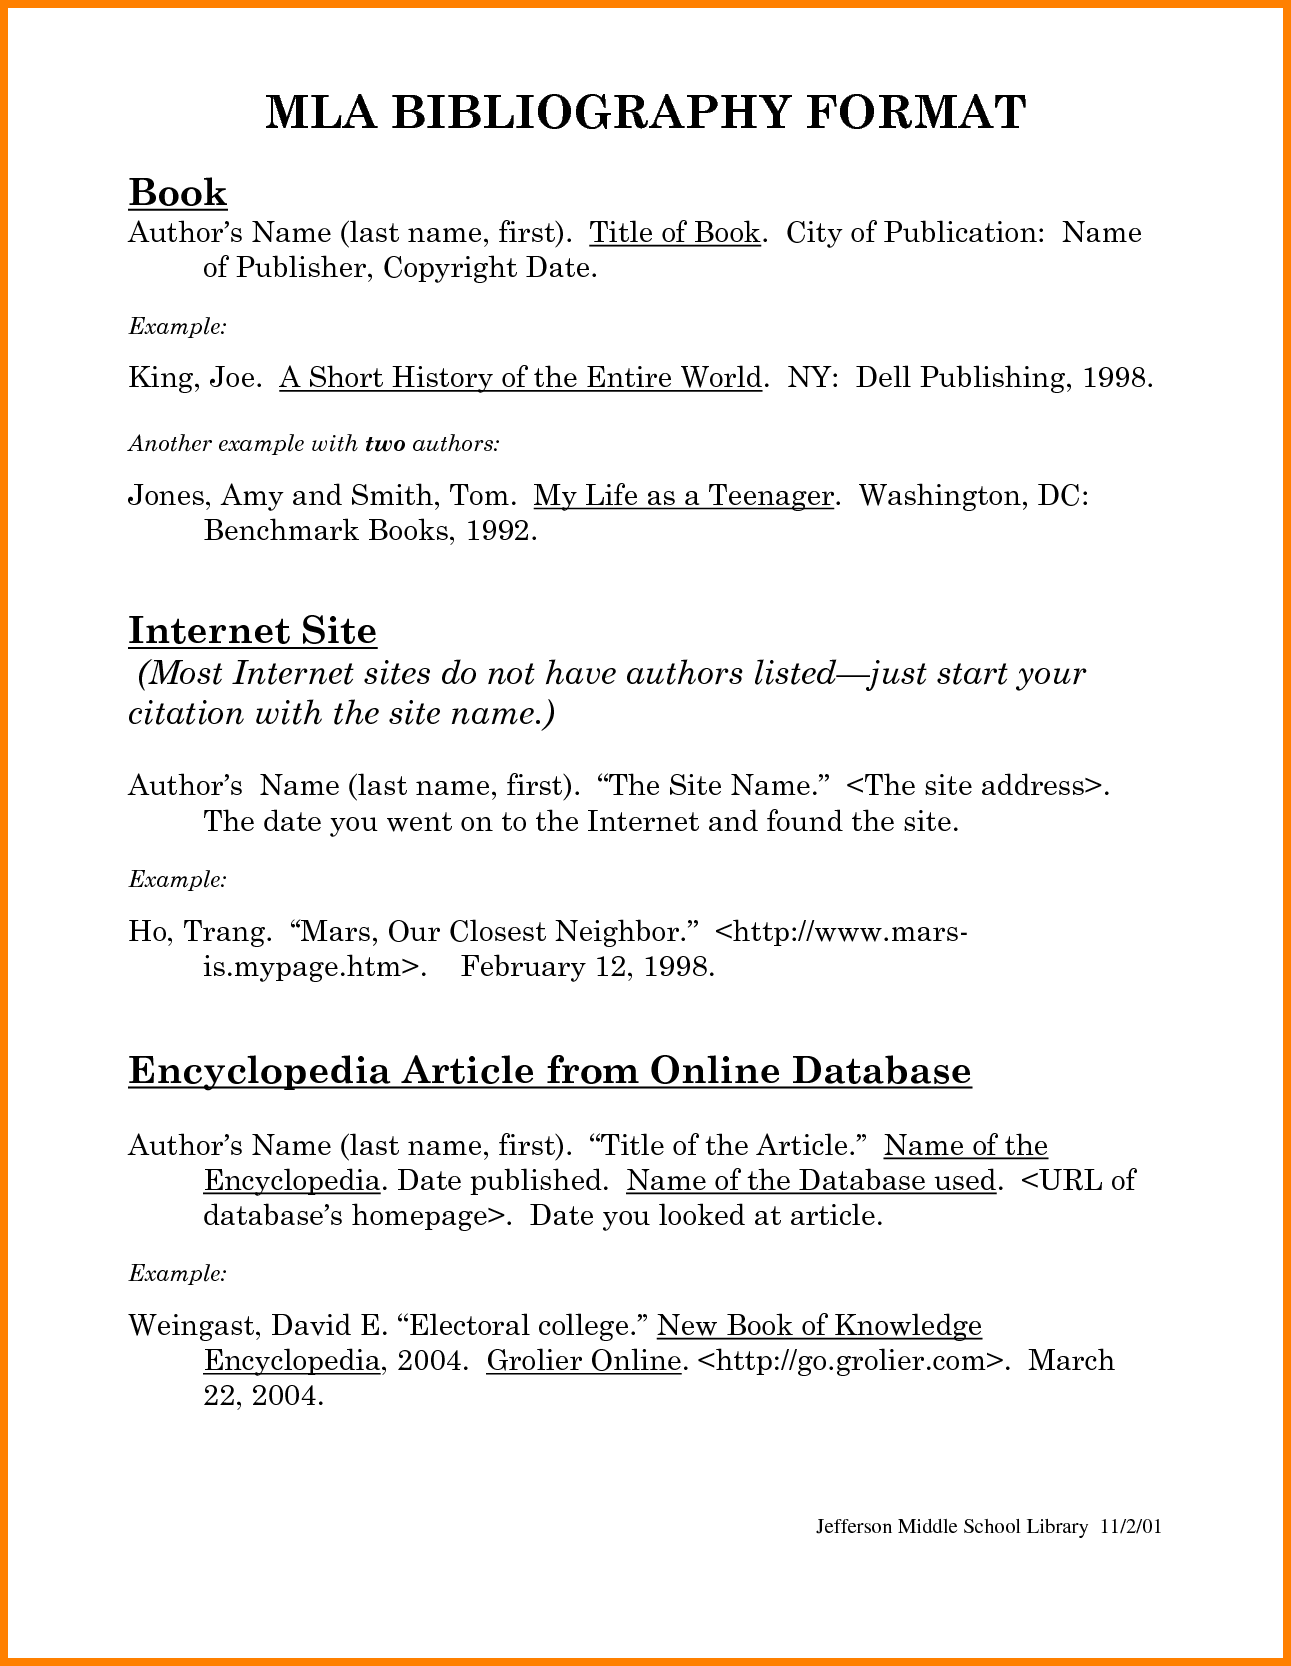 MLA Style Guide, 8th Edition: MLA Annotated Bibliography